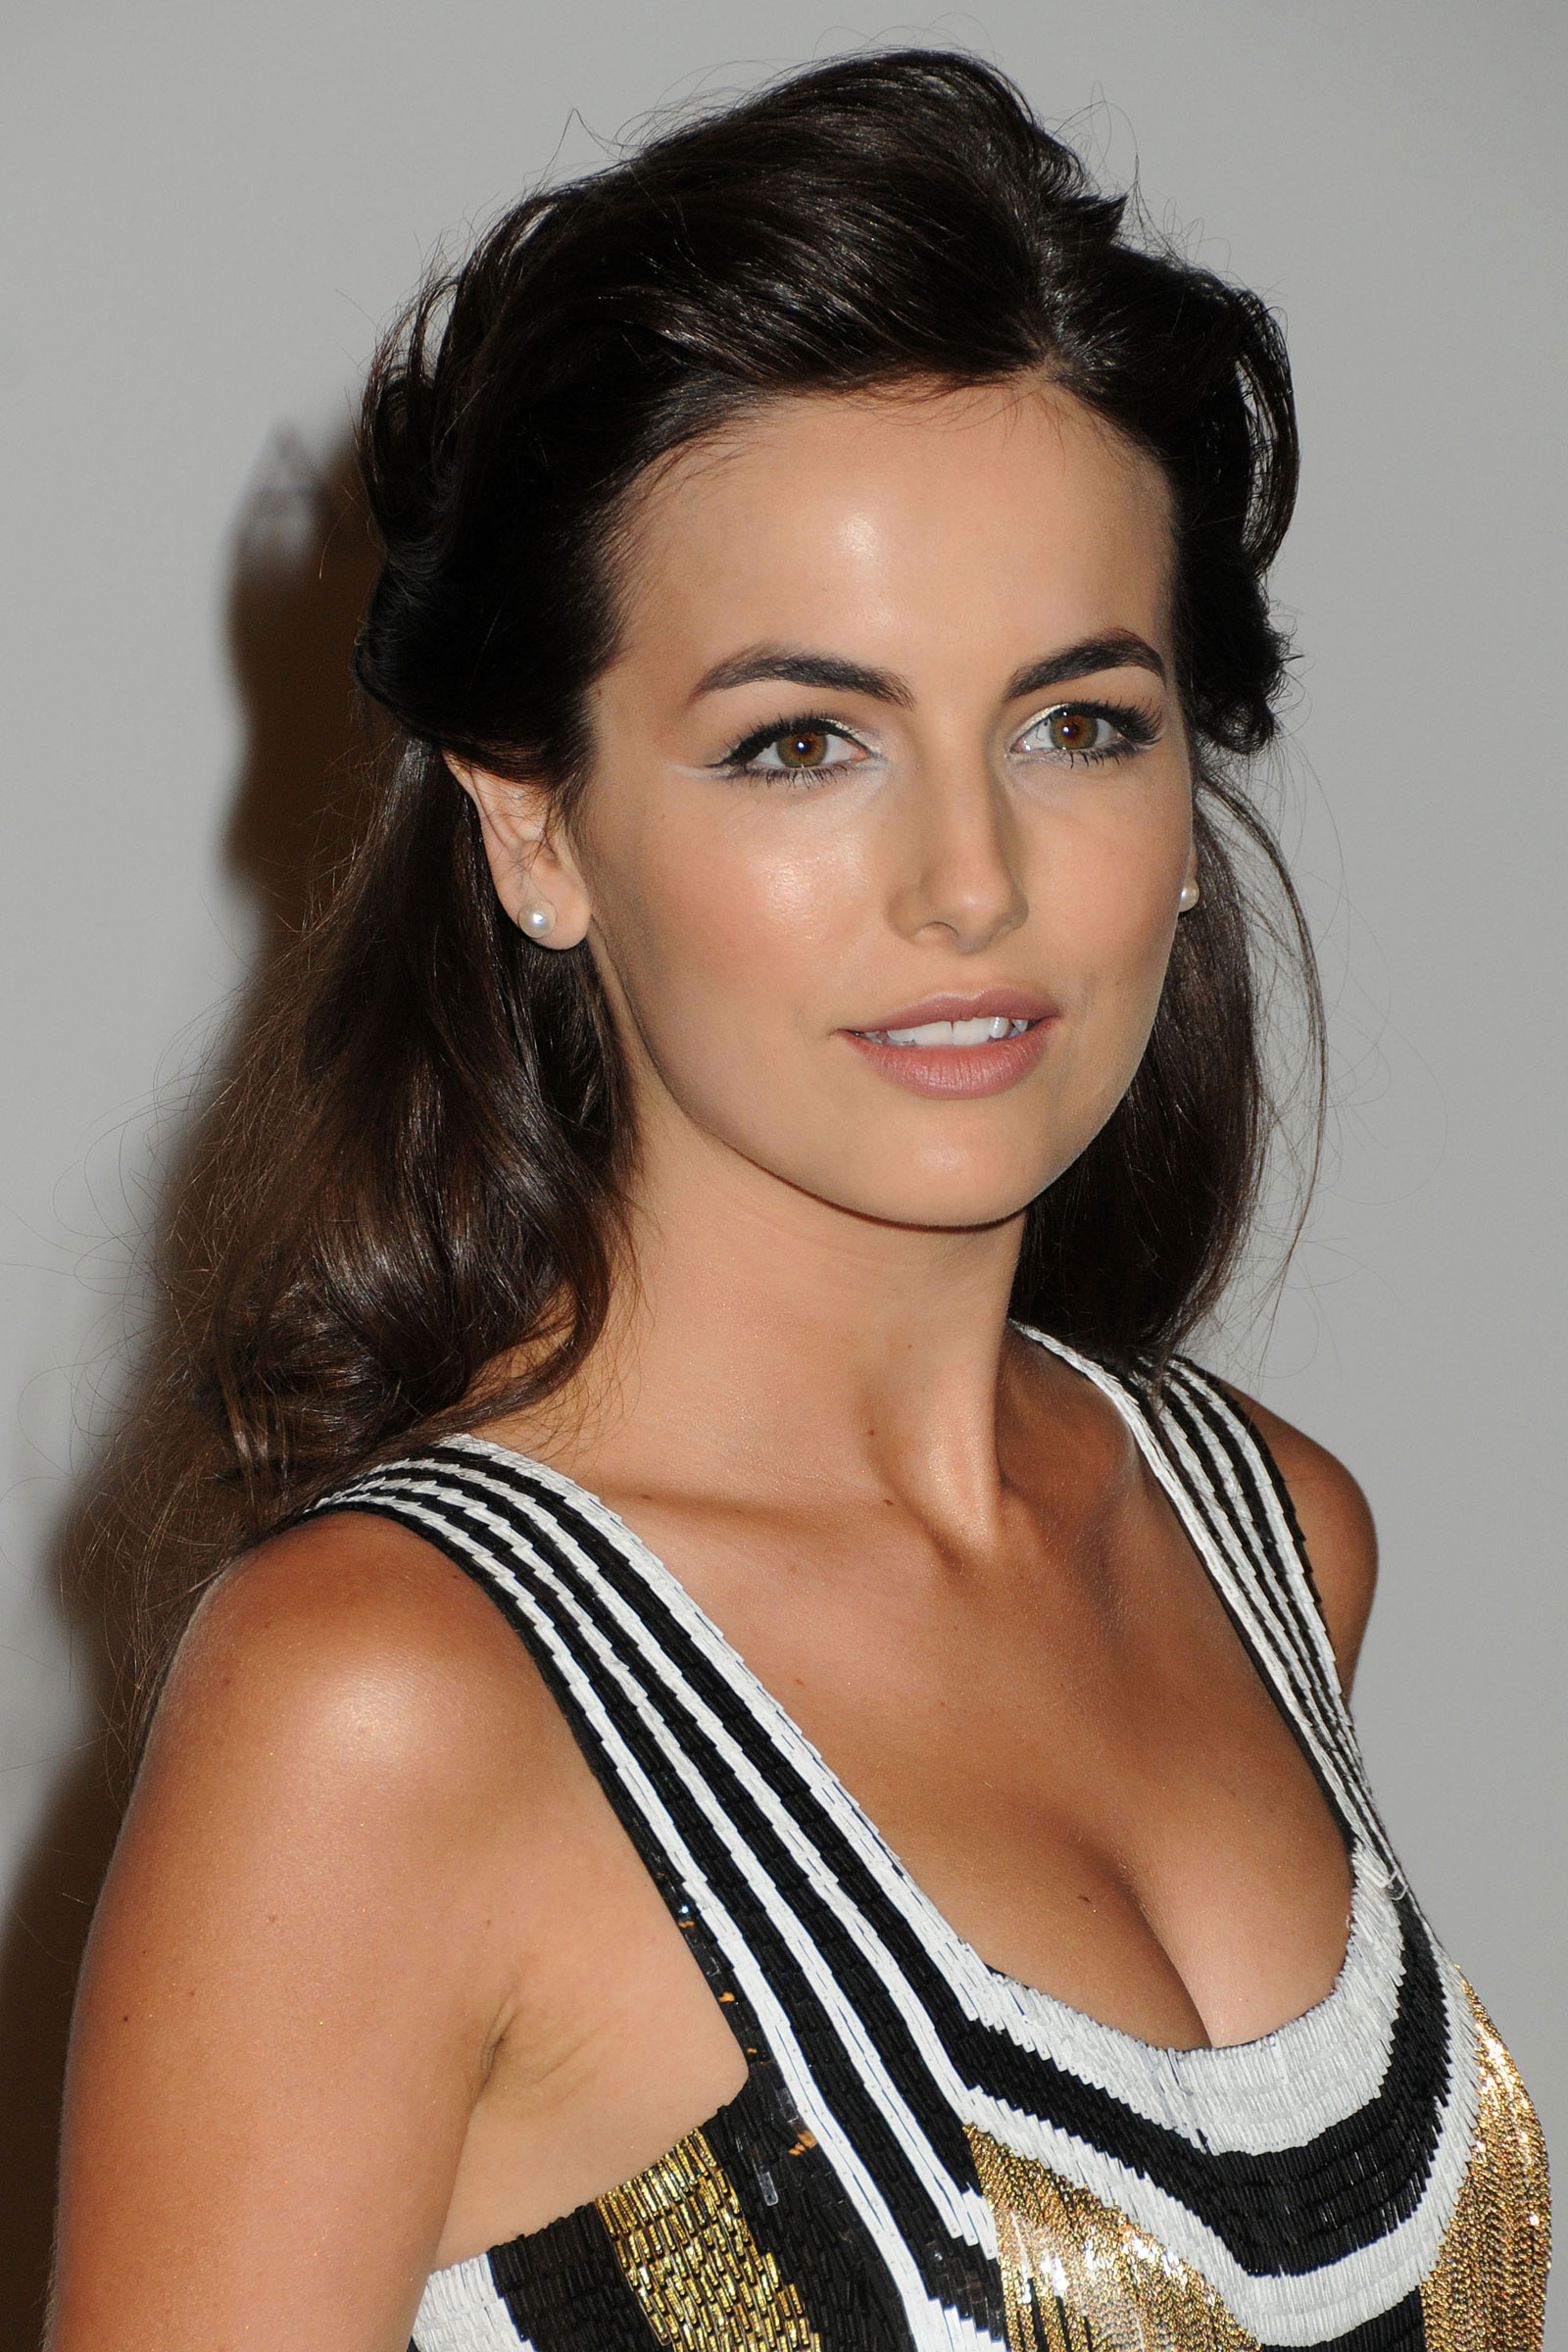 Bikini Camilla Belle nudes (34 photo), Hot